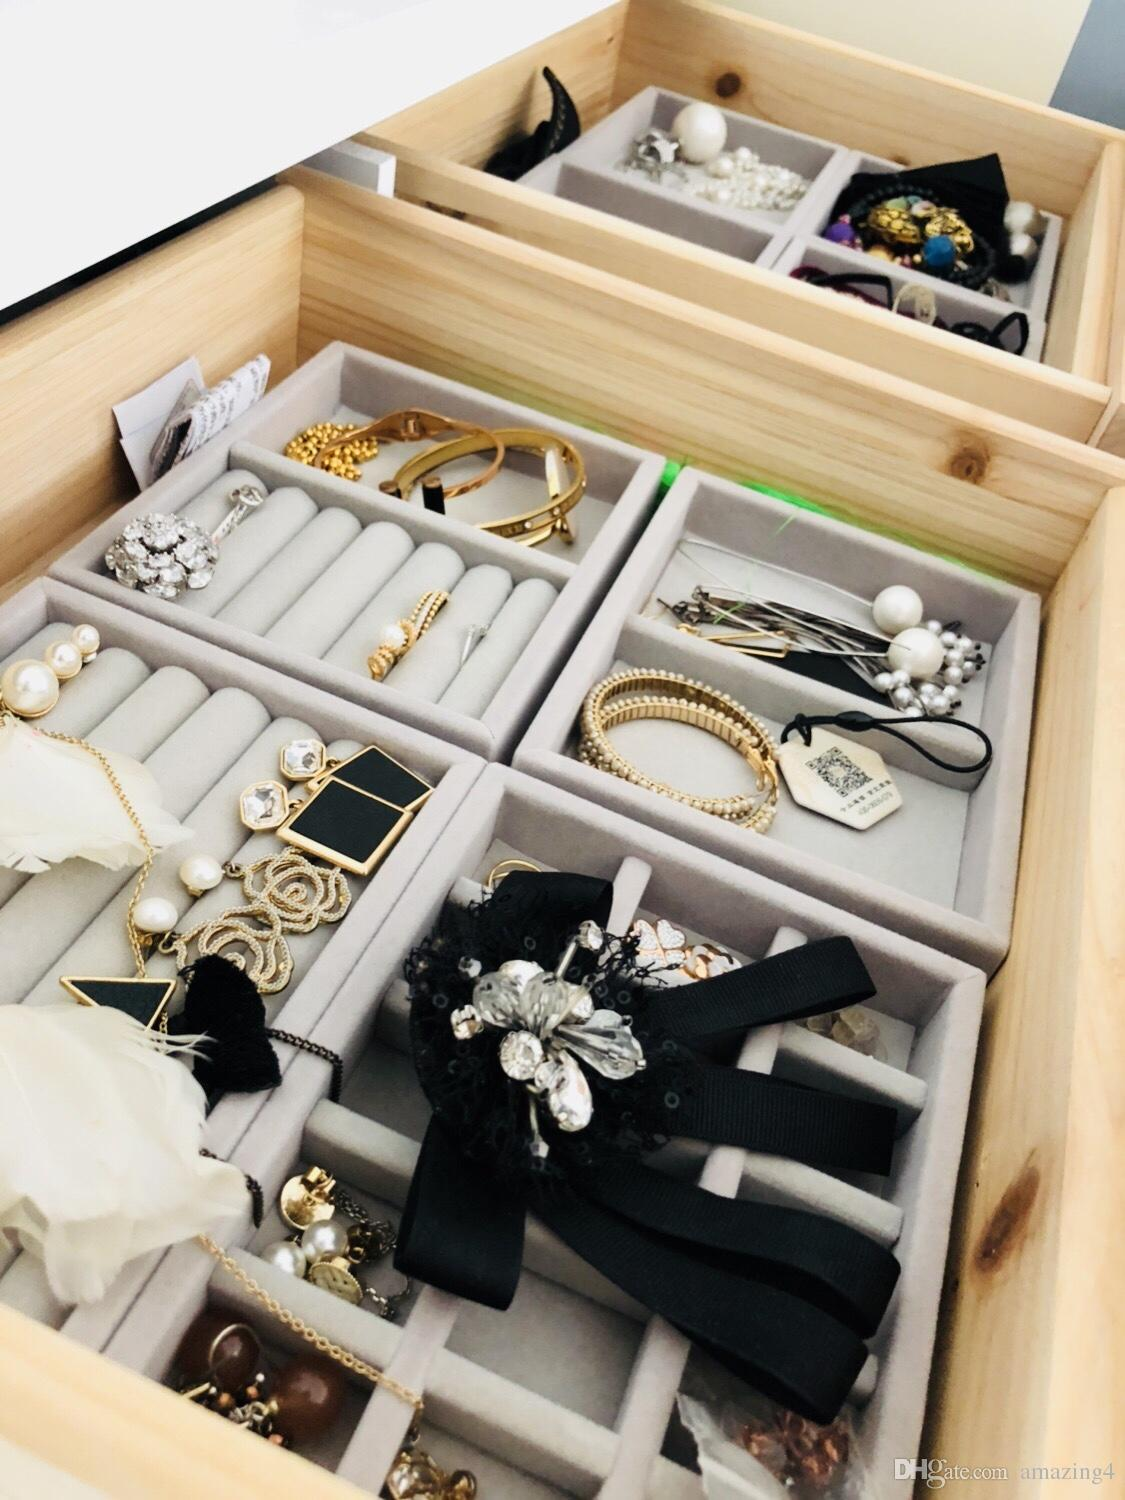 Hot Selling New Drawer Diy Jewelry Storage Tray Ring Bracelet Gift Box Jewellery Organizer Earring Holder Small Size Fit Most Room Space Canada 2021 From Amazing4 Cad 27 85 Dhgate Canada